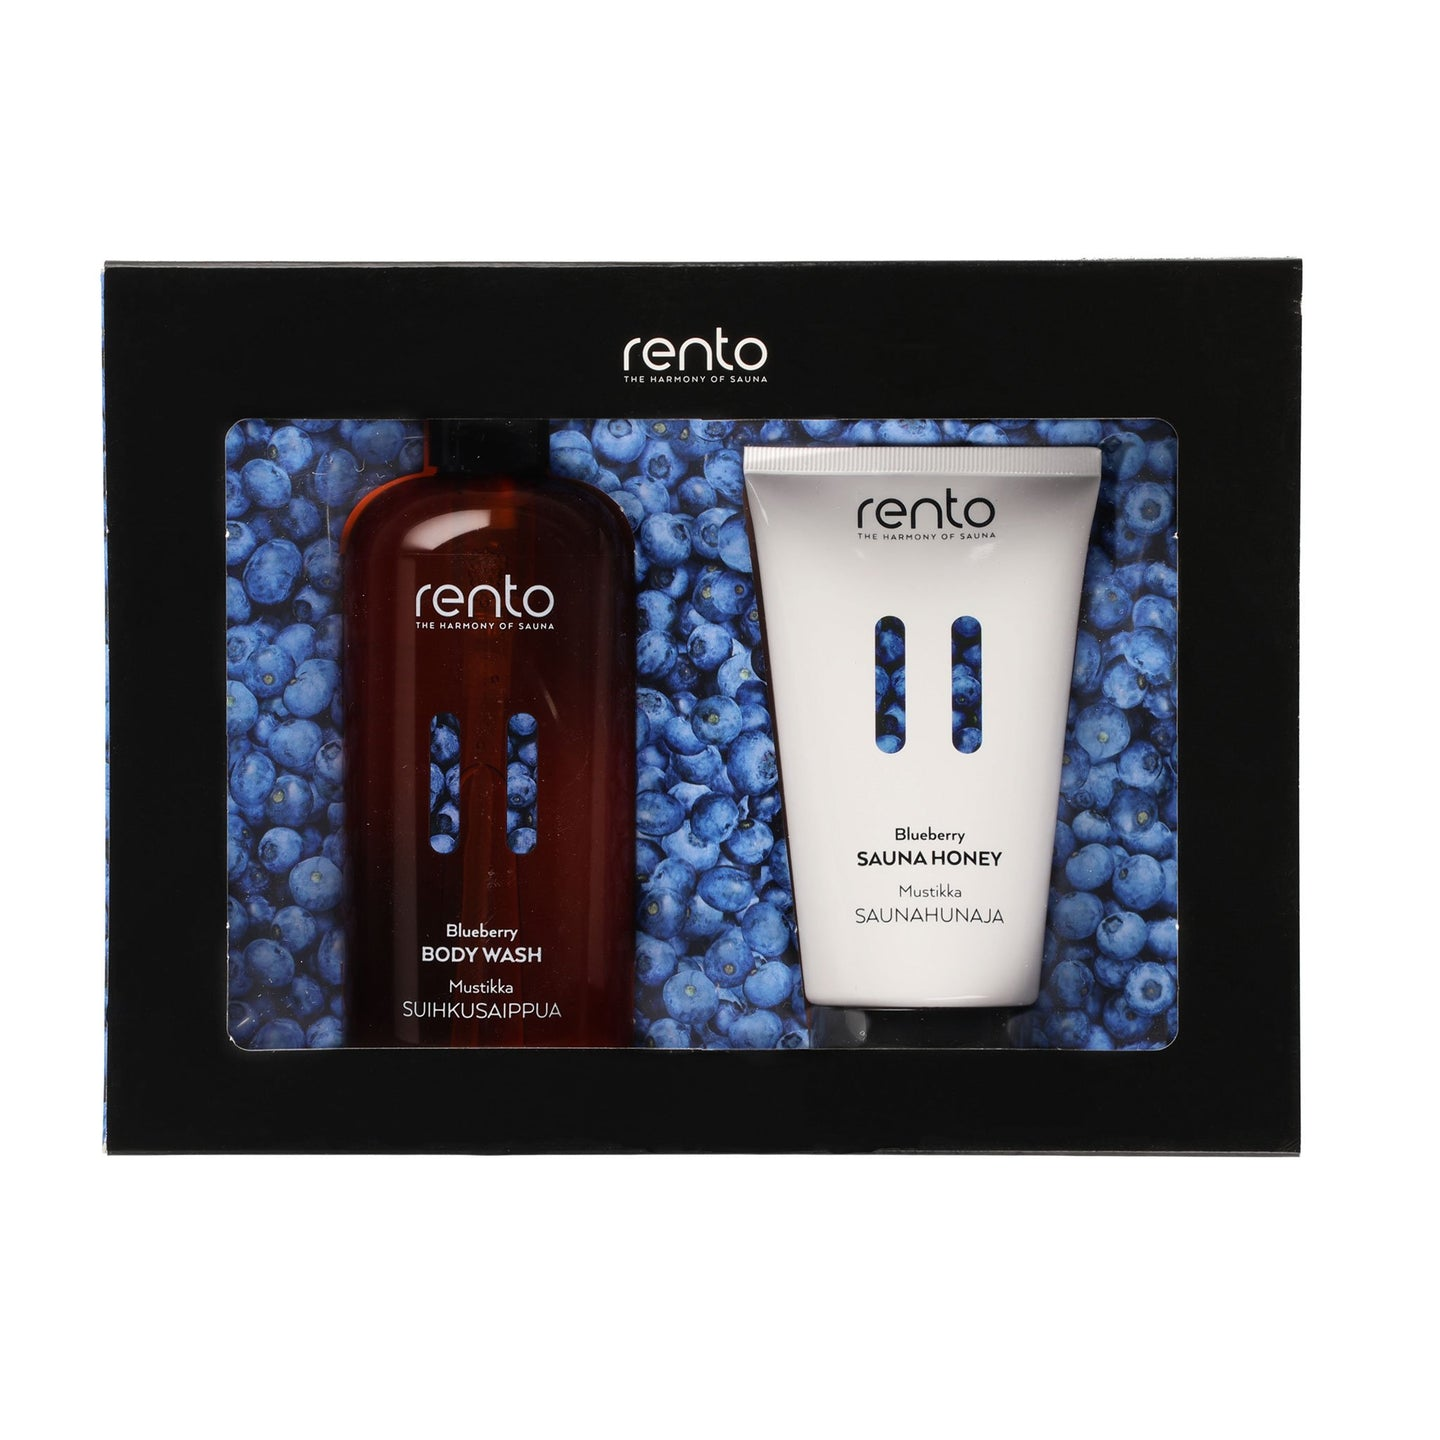 Blueberry Body Wash & Sauna Honey Gift Set Set by Rento Default Title Gift Set Finnmark Sauna